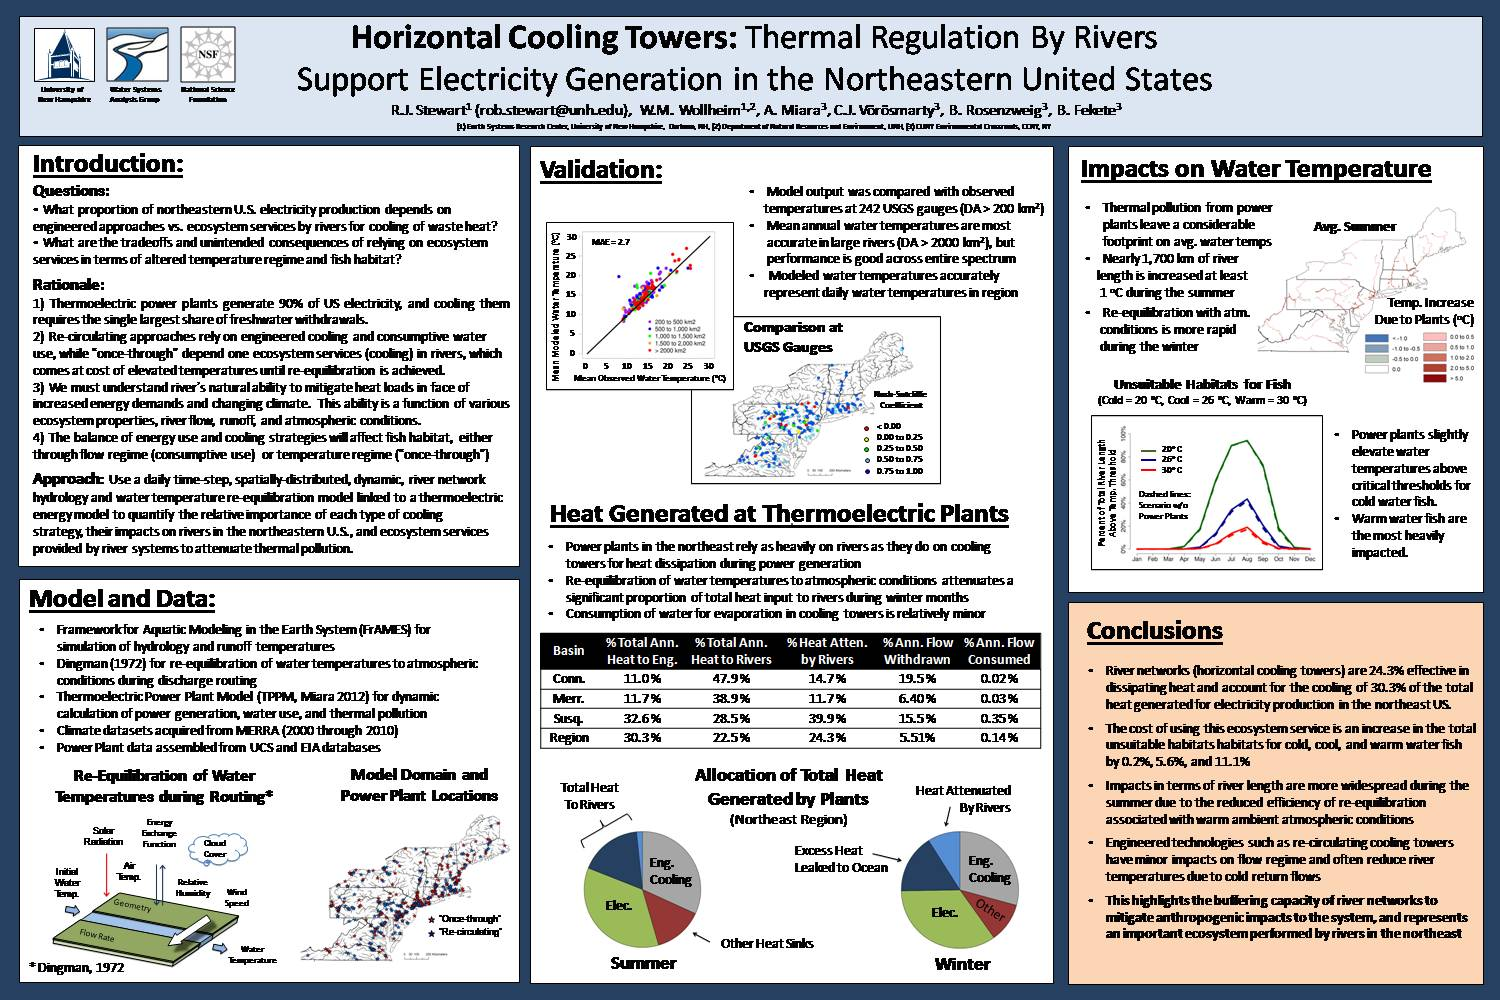 Horizontal Cooling Towers: Thermal Regulation By Rivers Support Electricity Generation In The Northeastern Us by stewart